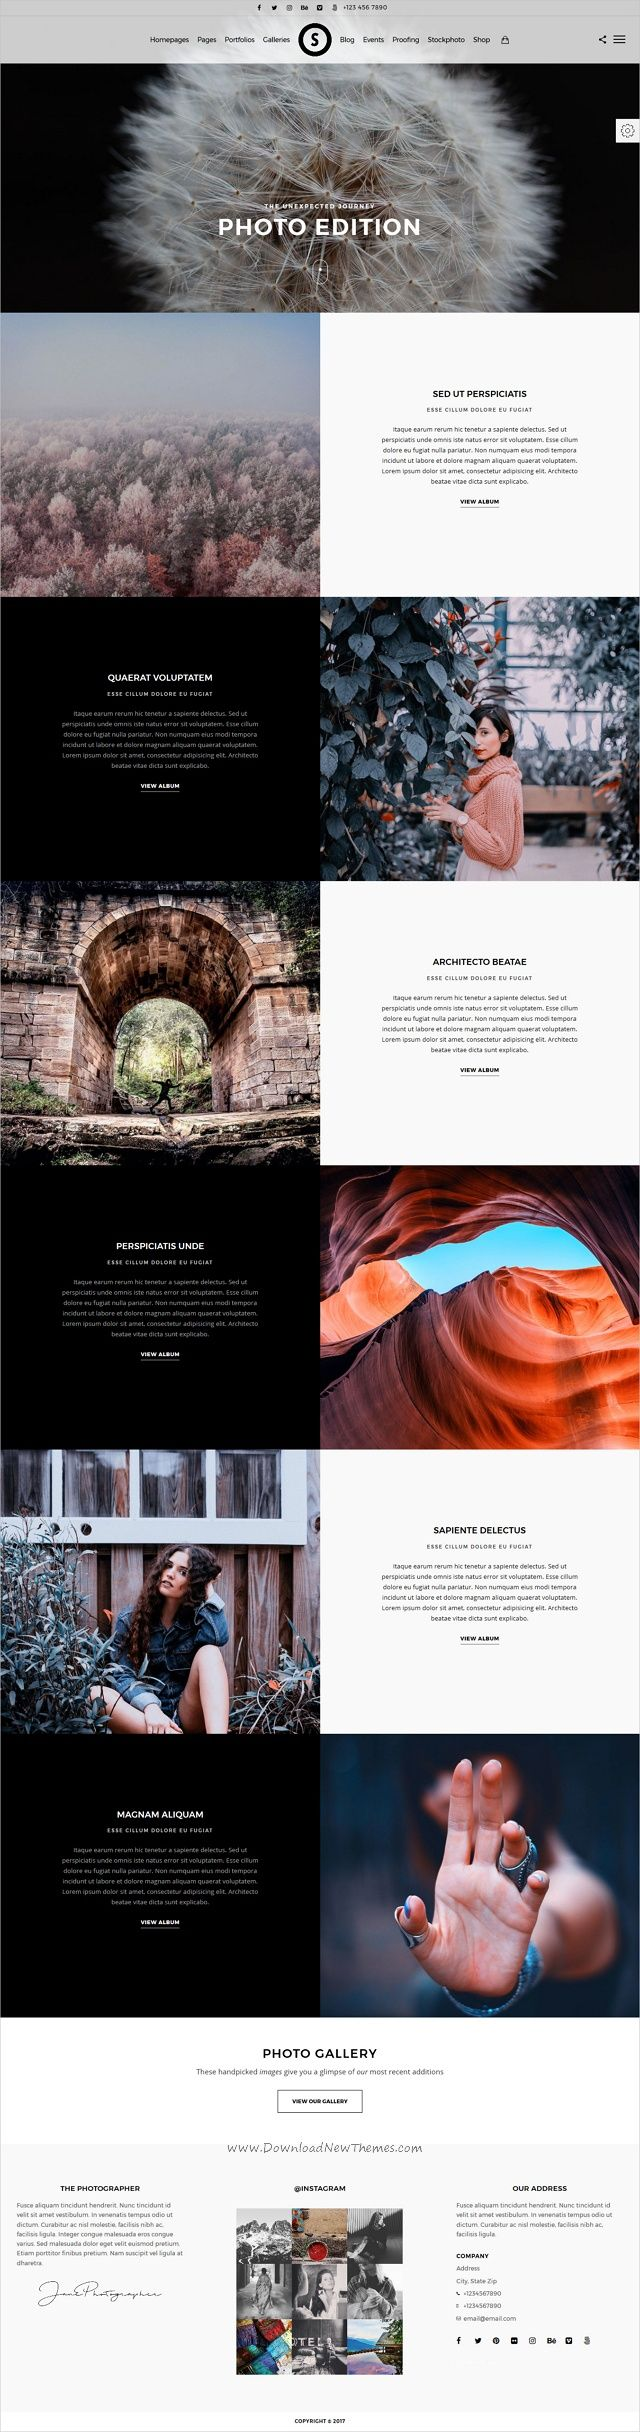 SceneOne is a feature rich responsive #WordPress theme for professional #photographers website with proofing, events, stockphoto galleries, fullscreens, portfolios and varieties of elements download now➩ https://themeforest.net/item/sceneone-photography-theme-for-wordpress/19591911?ref=Datasata